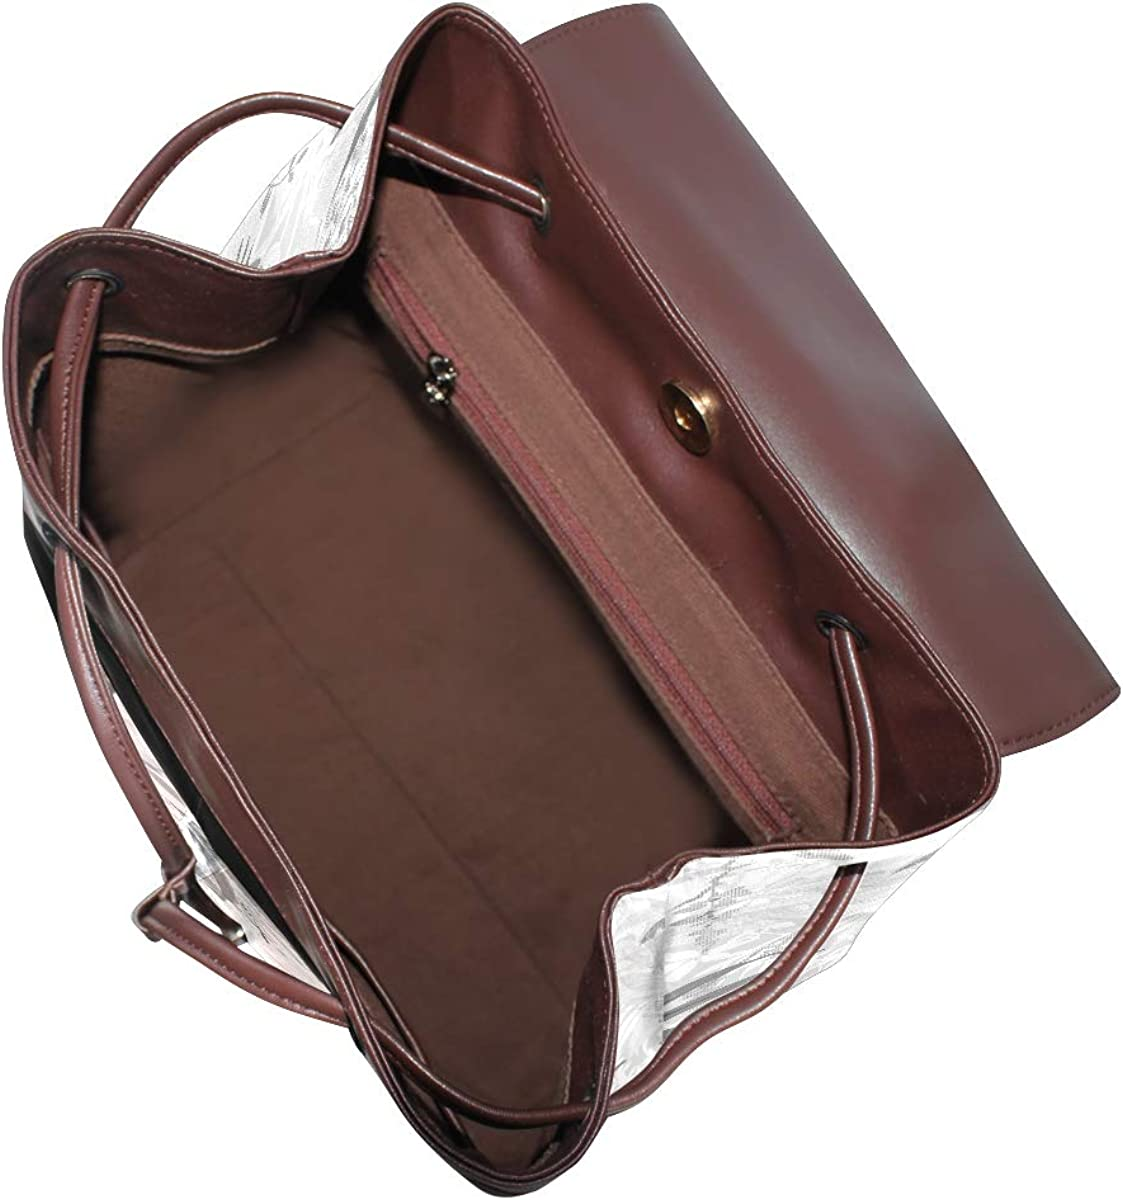 PU Leather Shoulder Bag,Diamond Feather Backpack,Portable Travel School Rucksack,Satchel with Top Handle